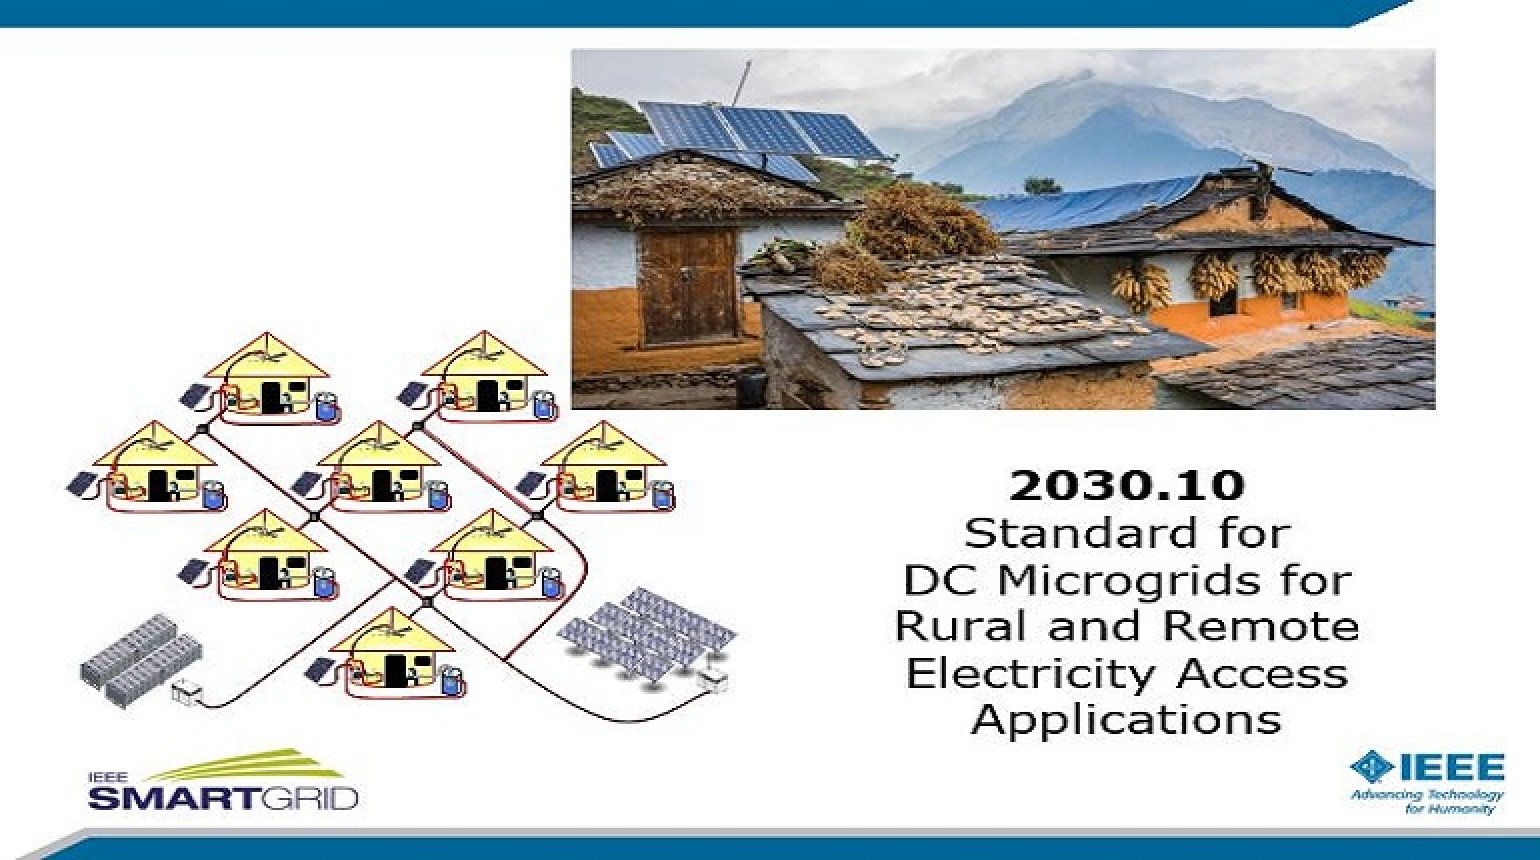 P2030.10 Standard for DC Microgrids for Rural and Remote Electricity Access Applications presented by Brian T. Patterson